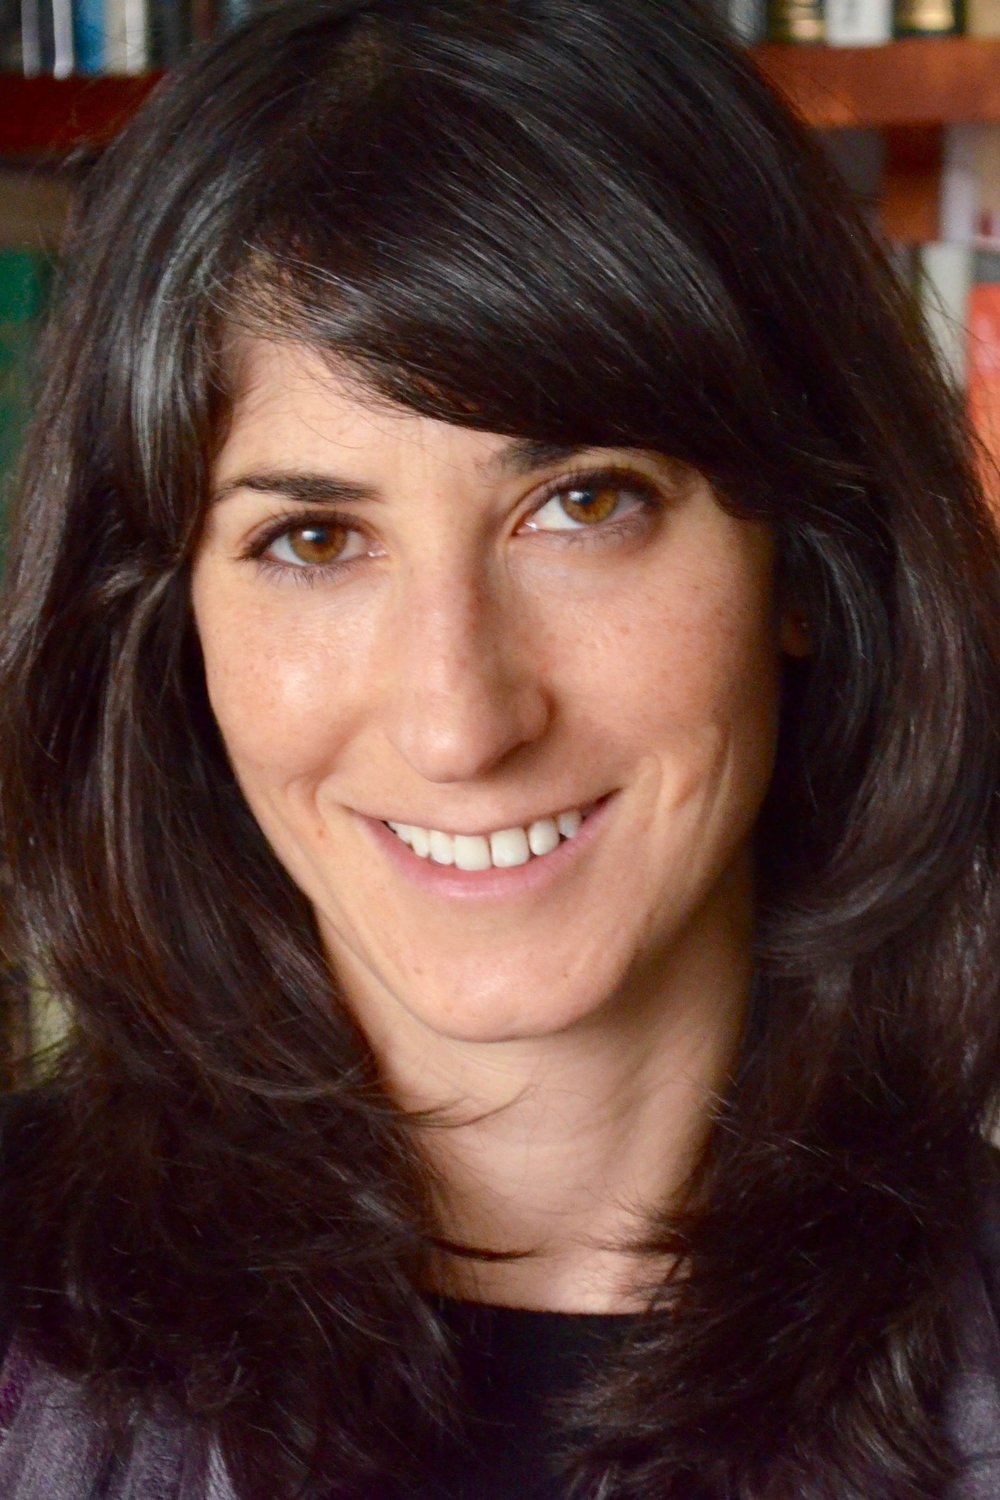 Rebecca Richman Cohen - Emmy Award nominated documentary filmmaker and Lecturer at Harvard Law School, specializing in human rights and criminal defense and showing video from her op/doc series